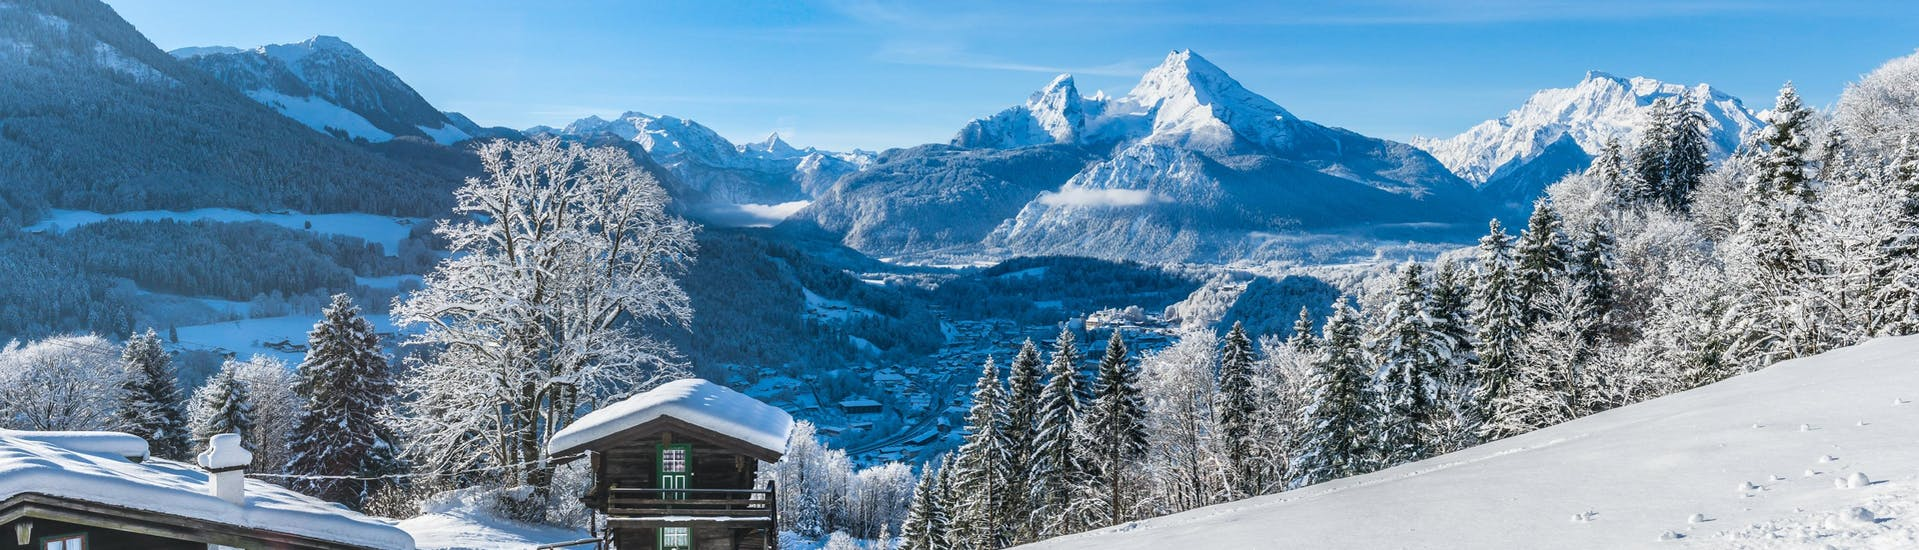 A view of the dreamly winter landscape of Berchtesgadener Land, a popular region in Germany where visitors can books ski lessons with one of the local ski schools.